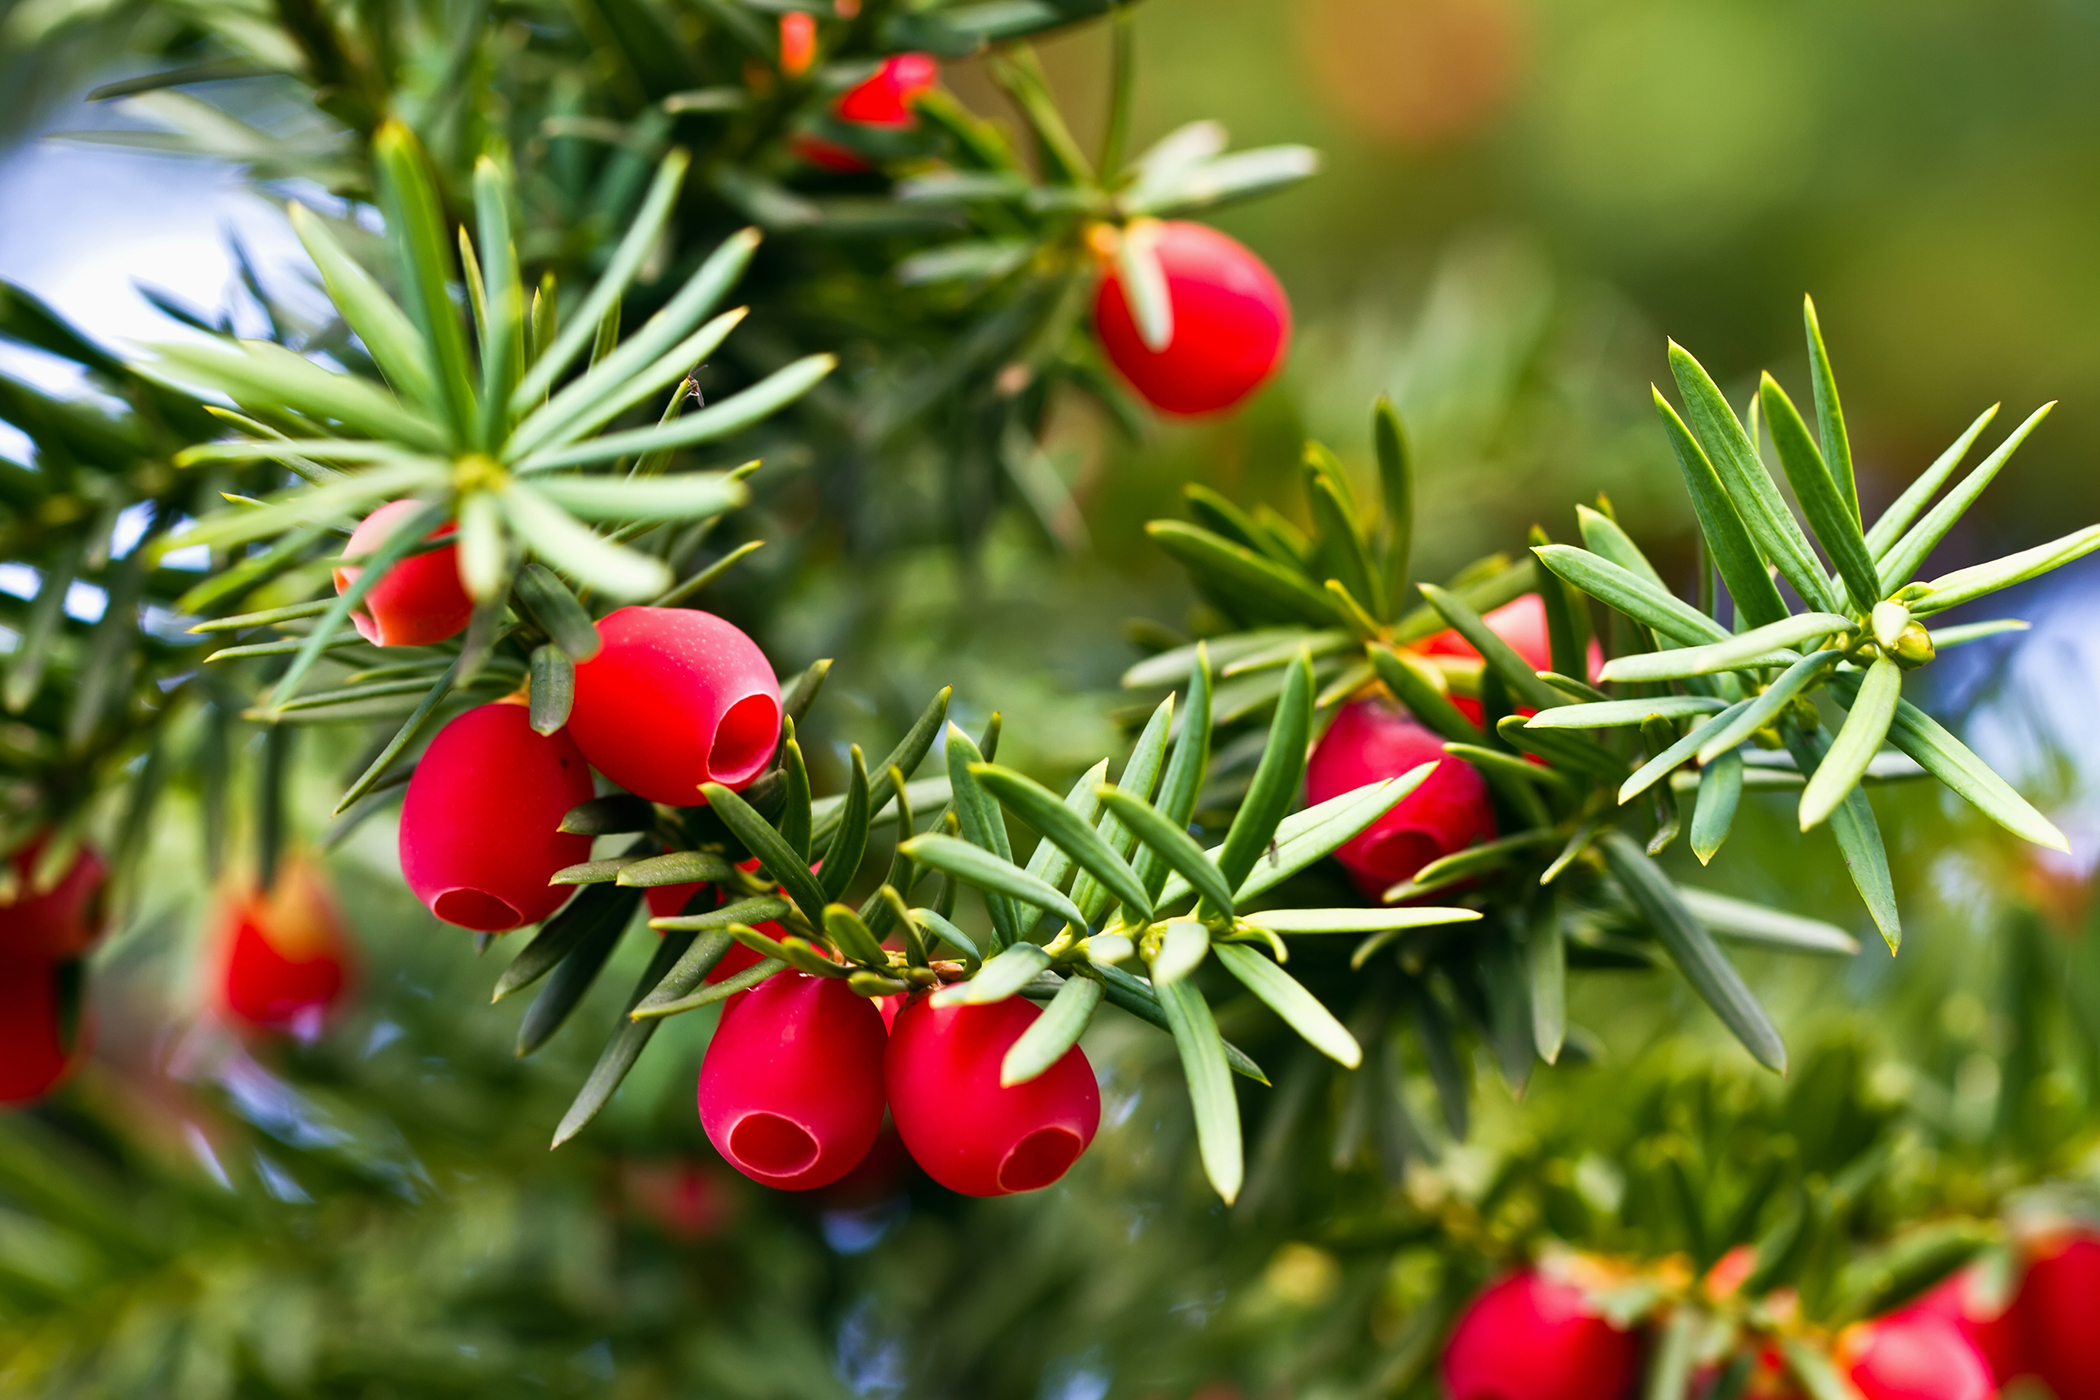 Pacific Yew Poisoning in Cats